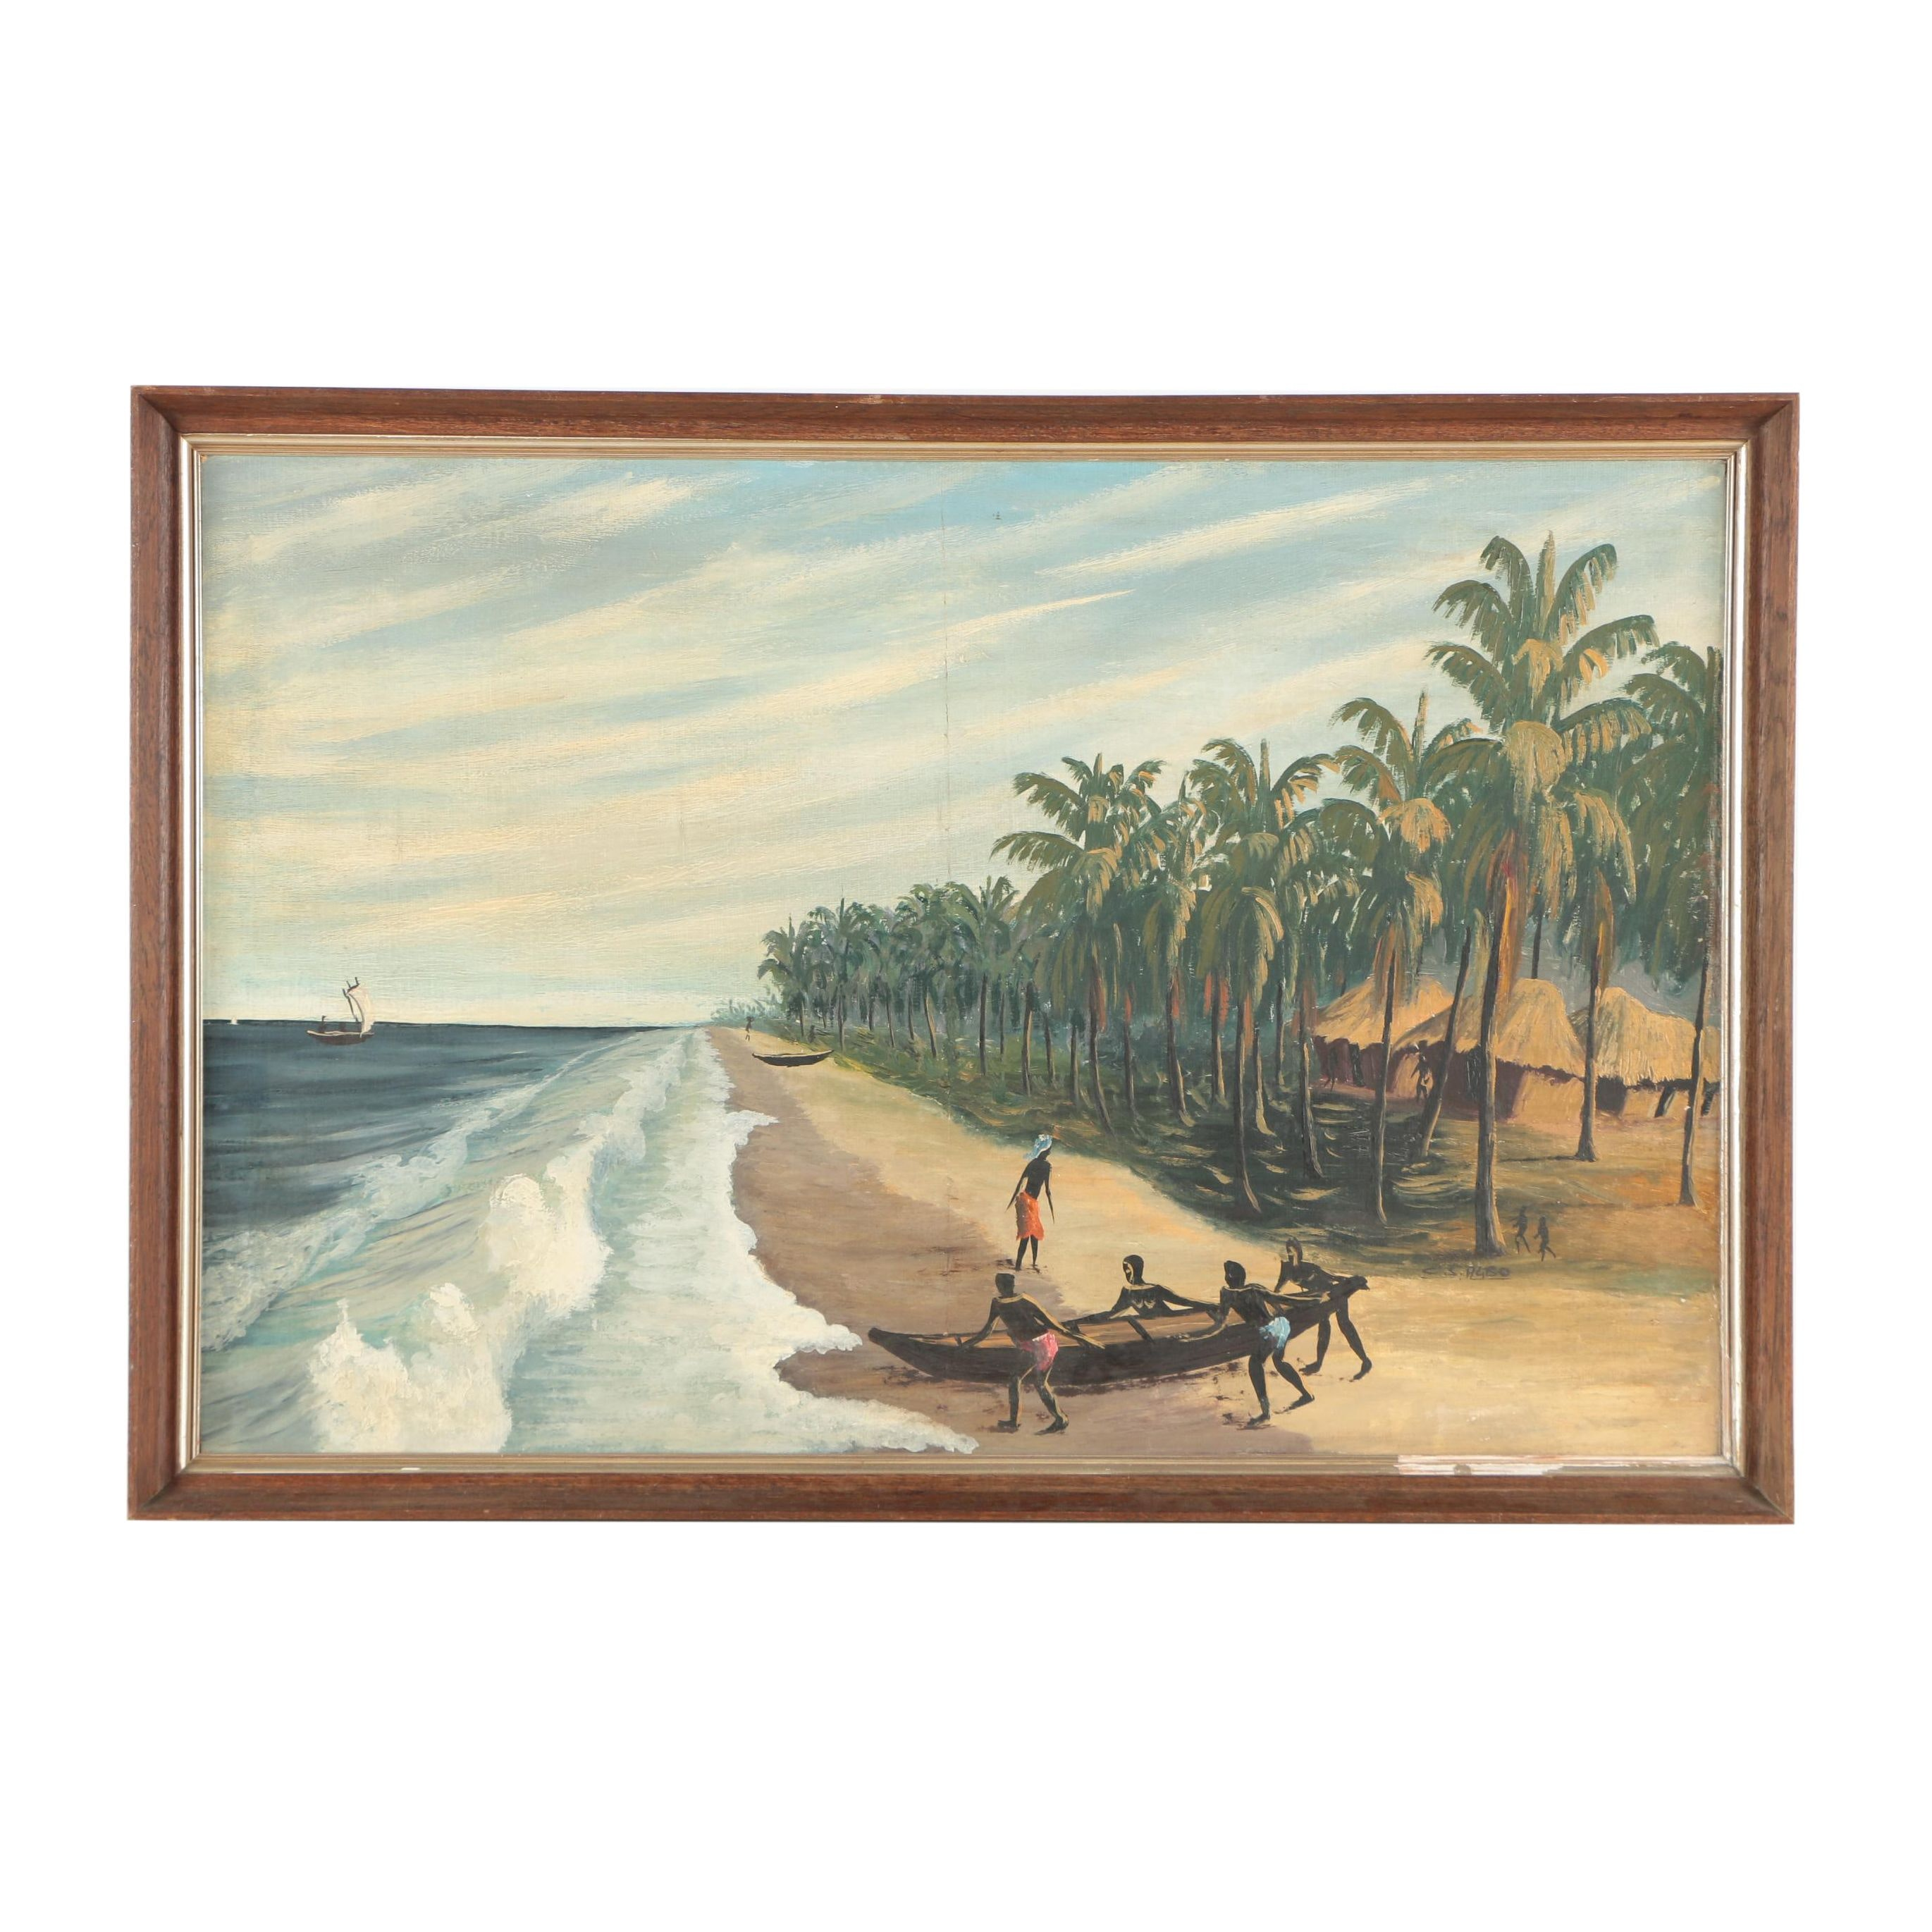 C.S. Agbo Oil Painting of Coastal Scene